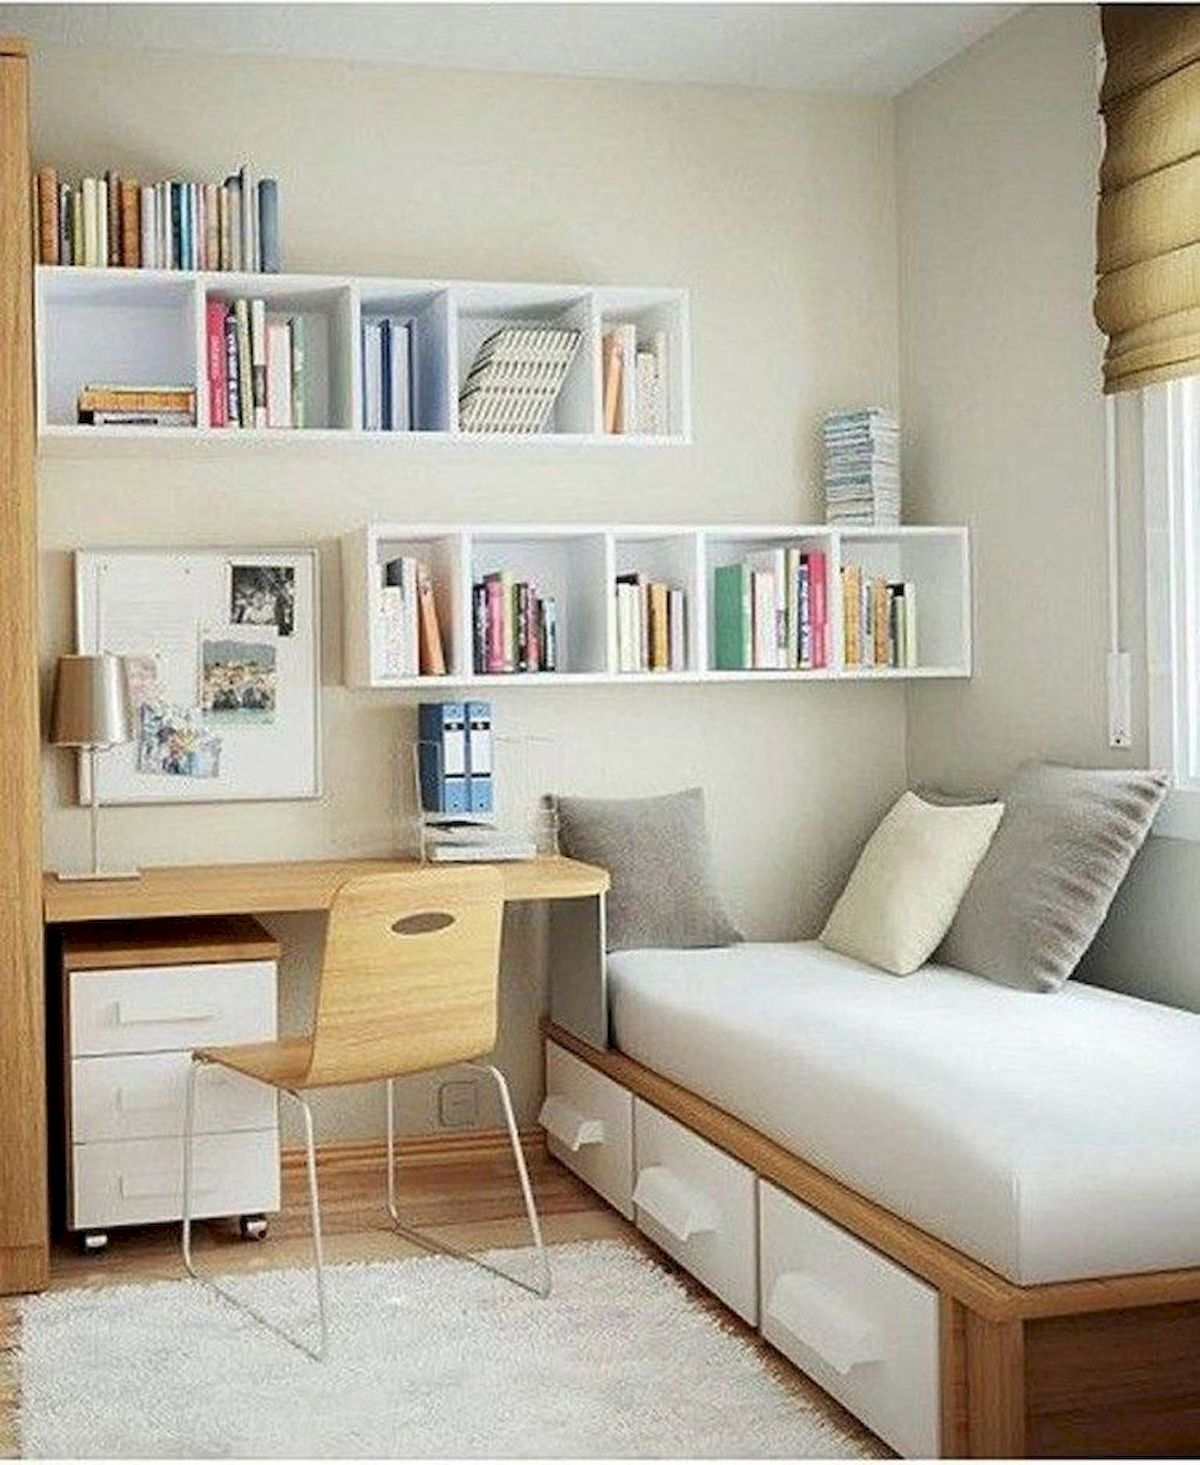 Awesome Small Bedroom Decorating Ideas On A Budget (28)